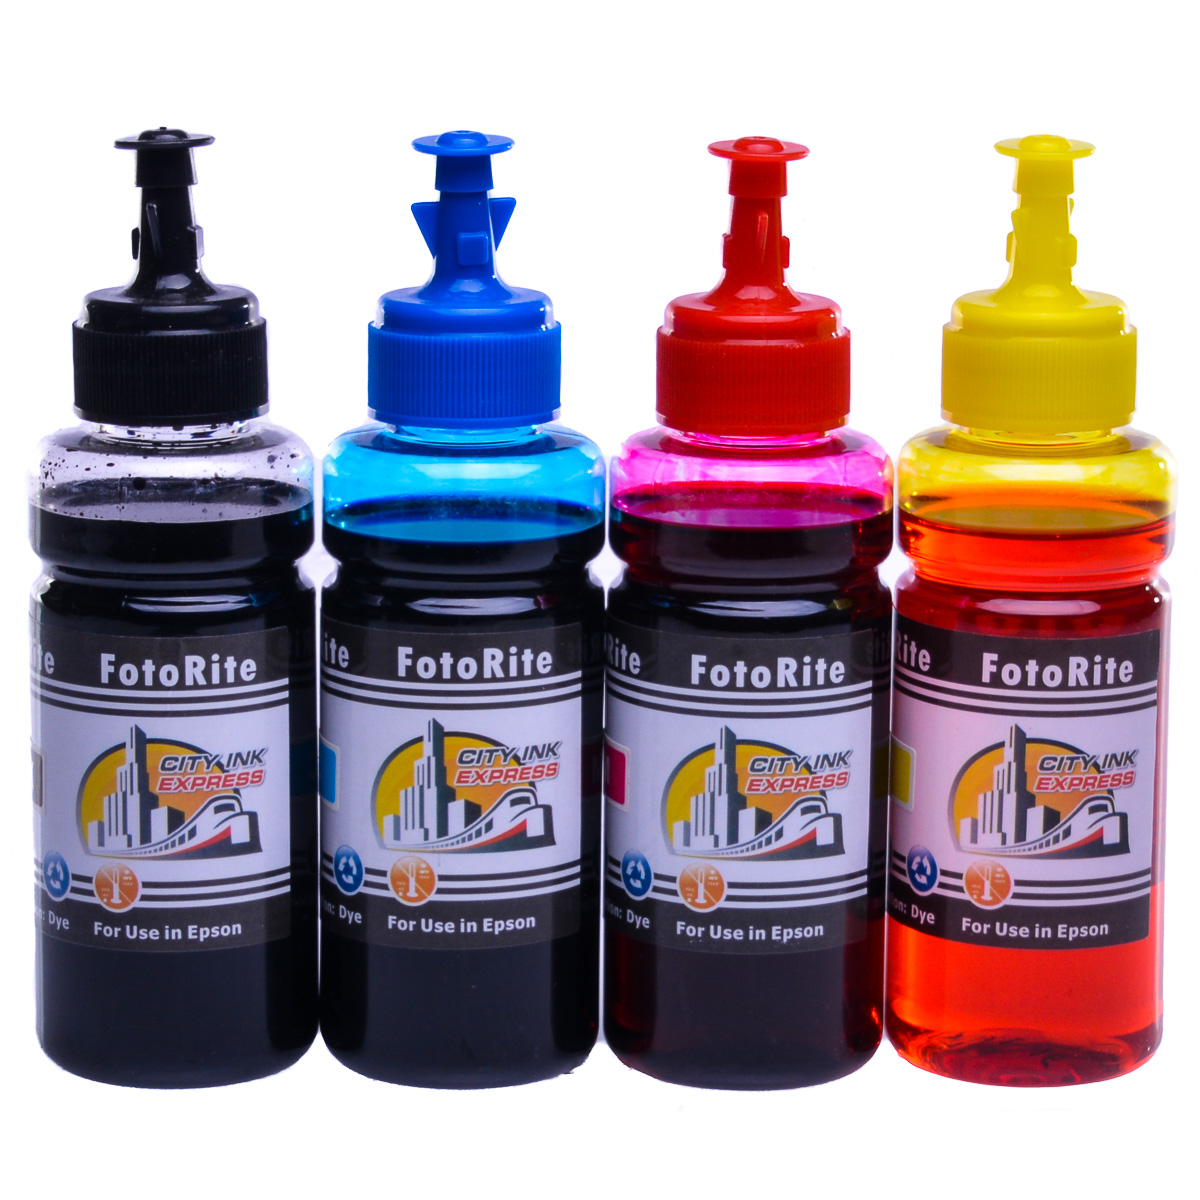 Cheap Multipack dye ink refill replaces Epson WF-3720